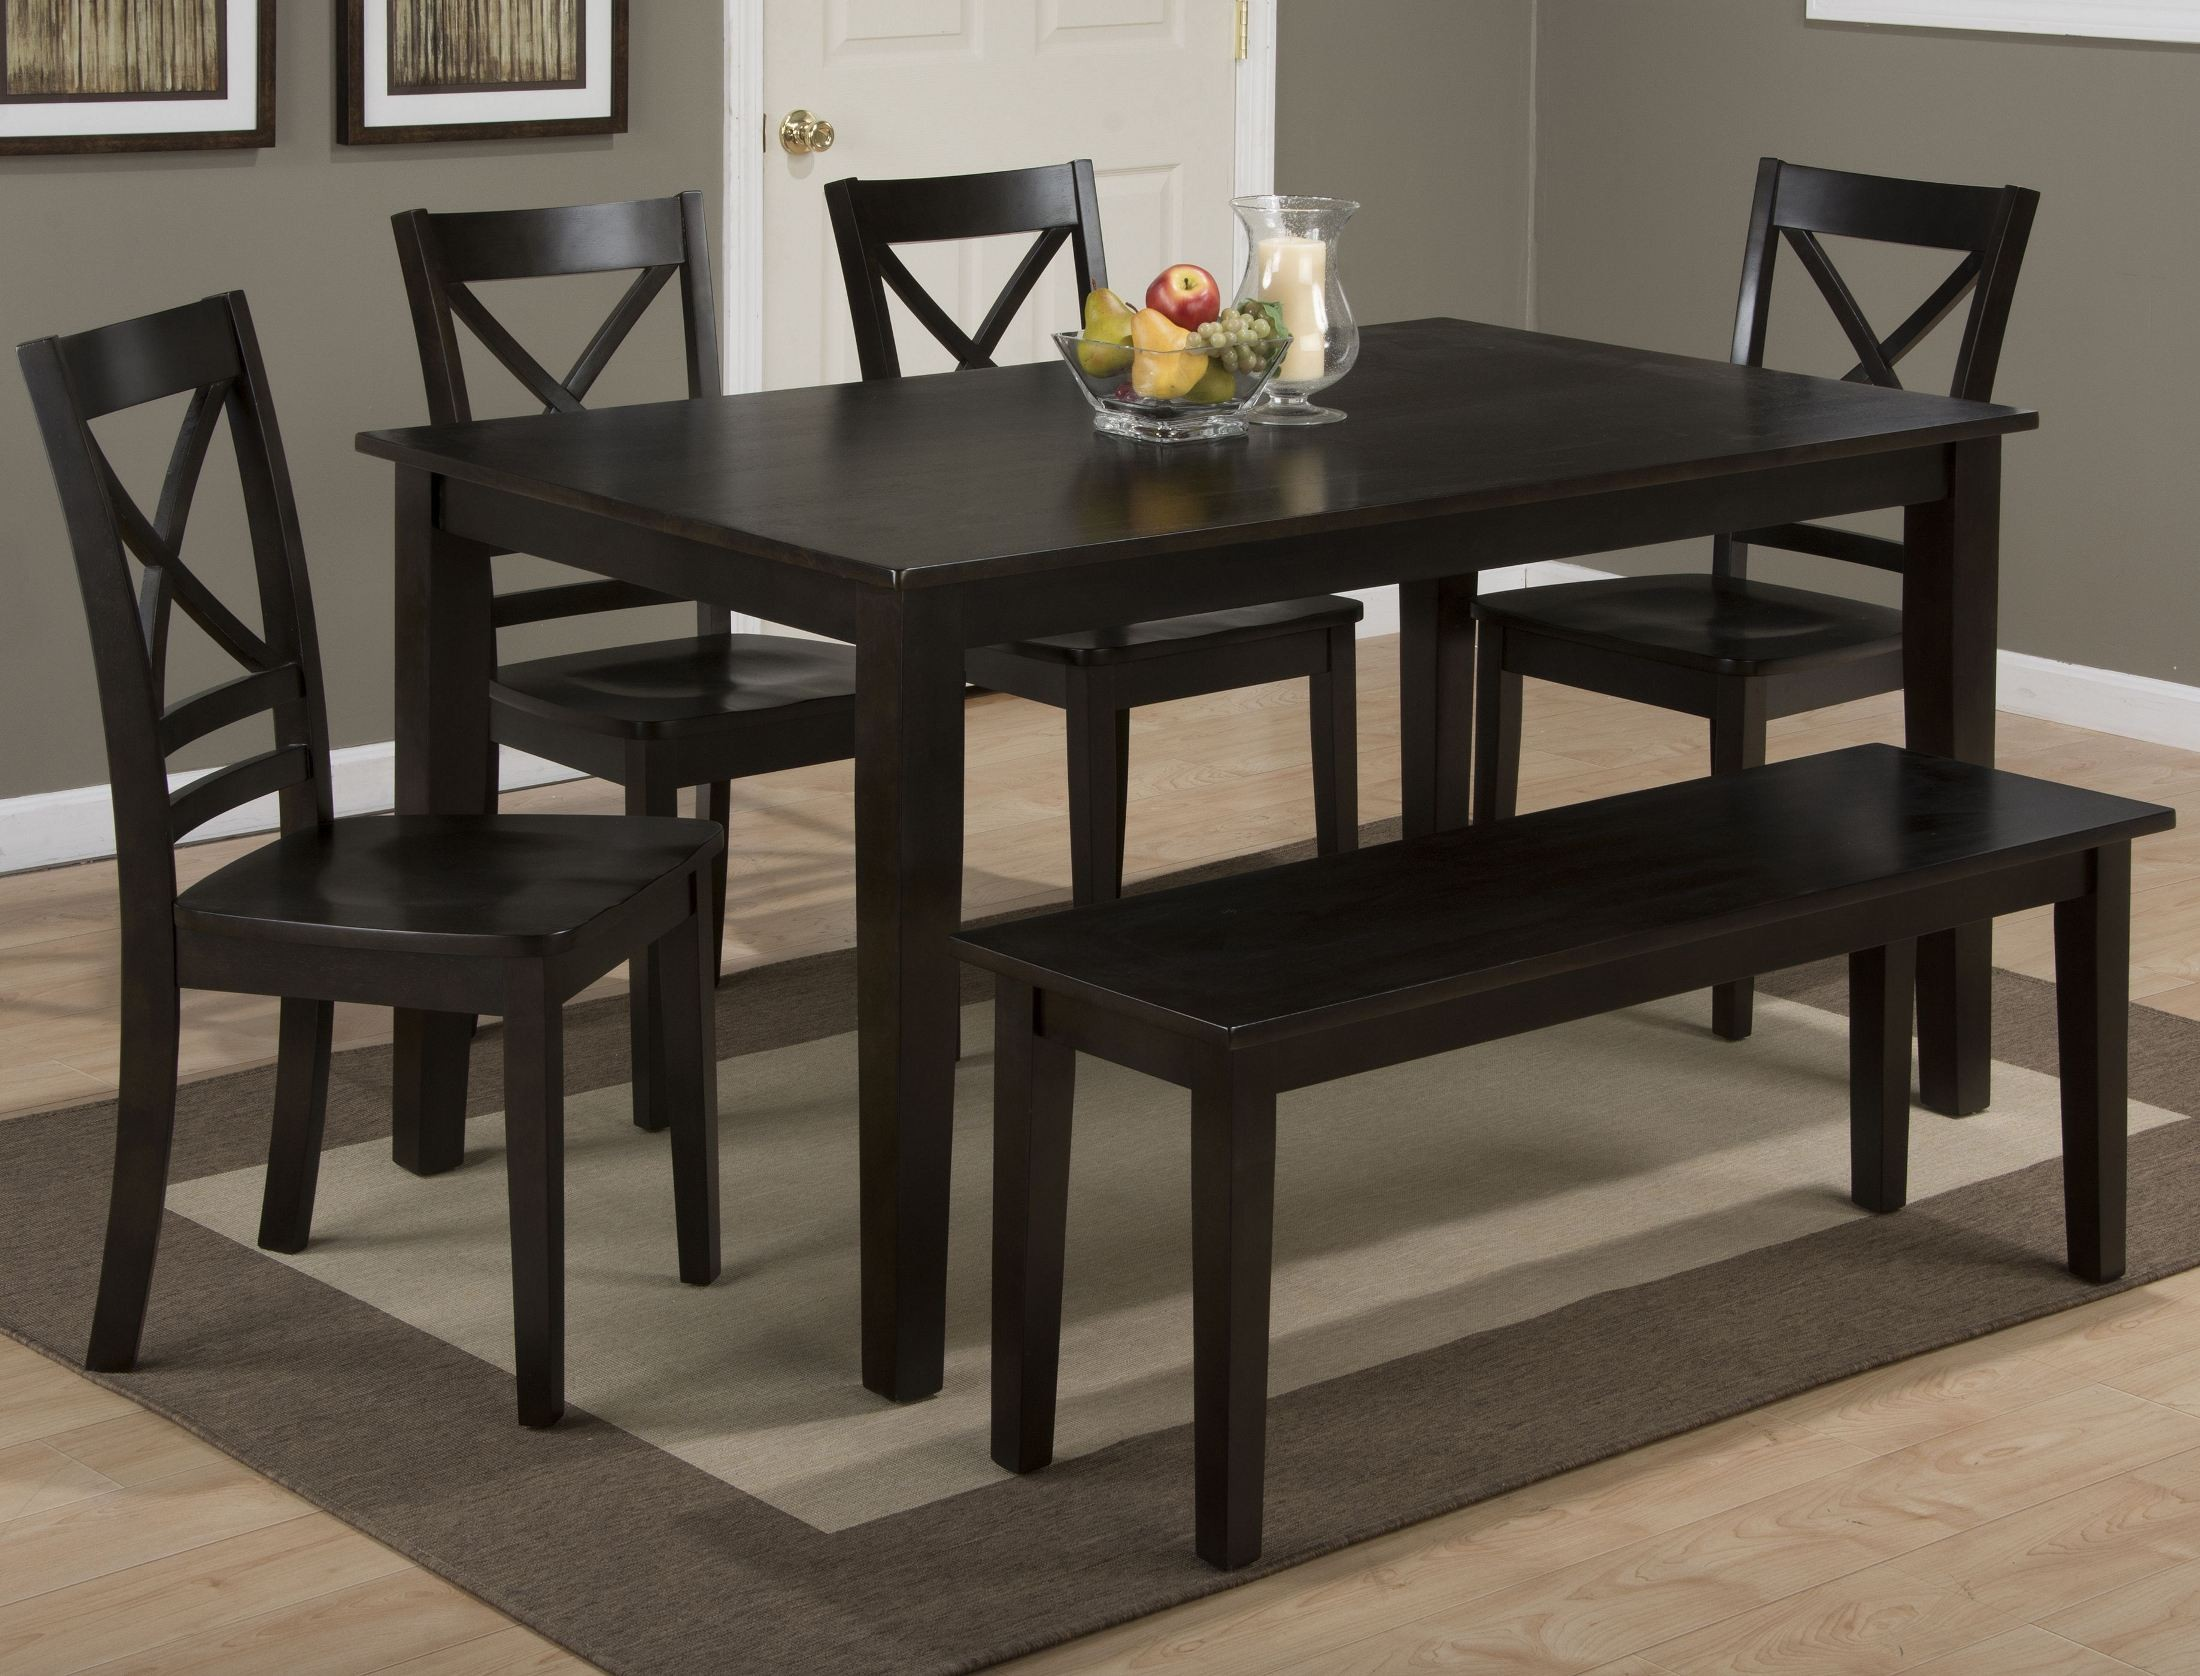 Simplicity Espresso Rectangular Dining Table From Jofran